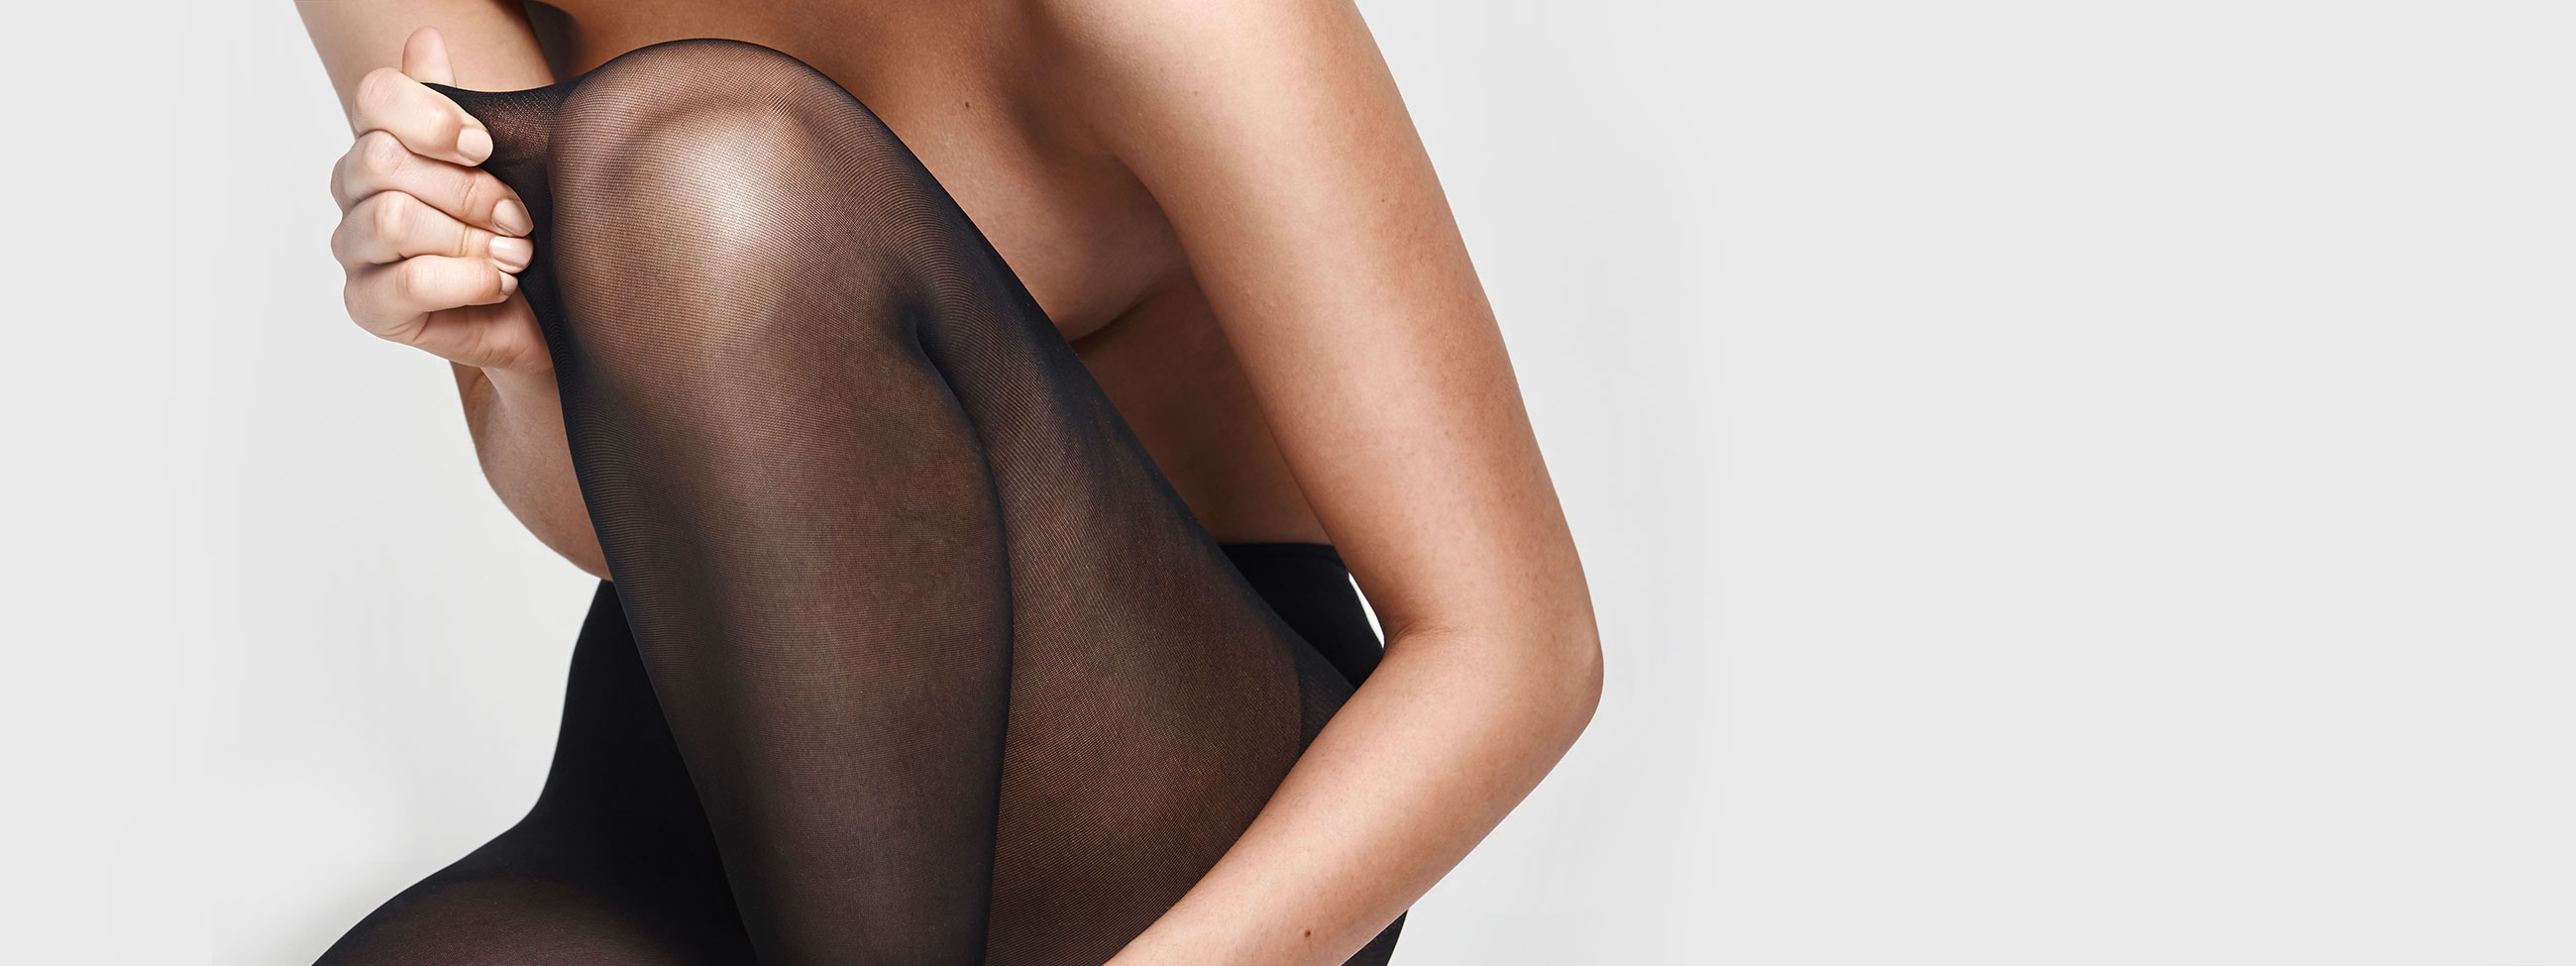 Our solution to your tights dilemma